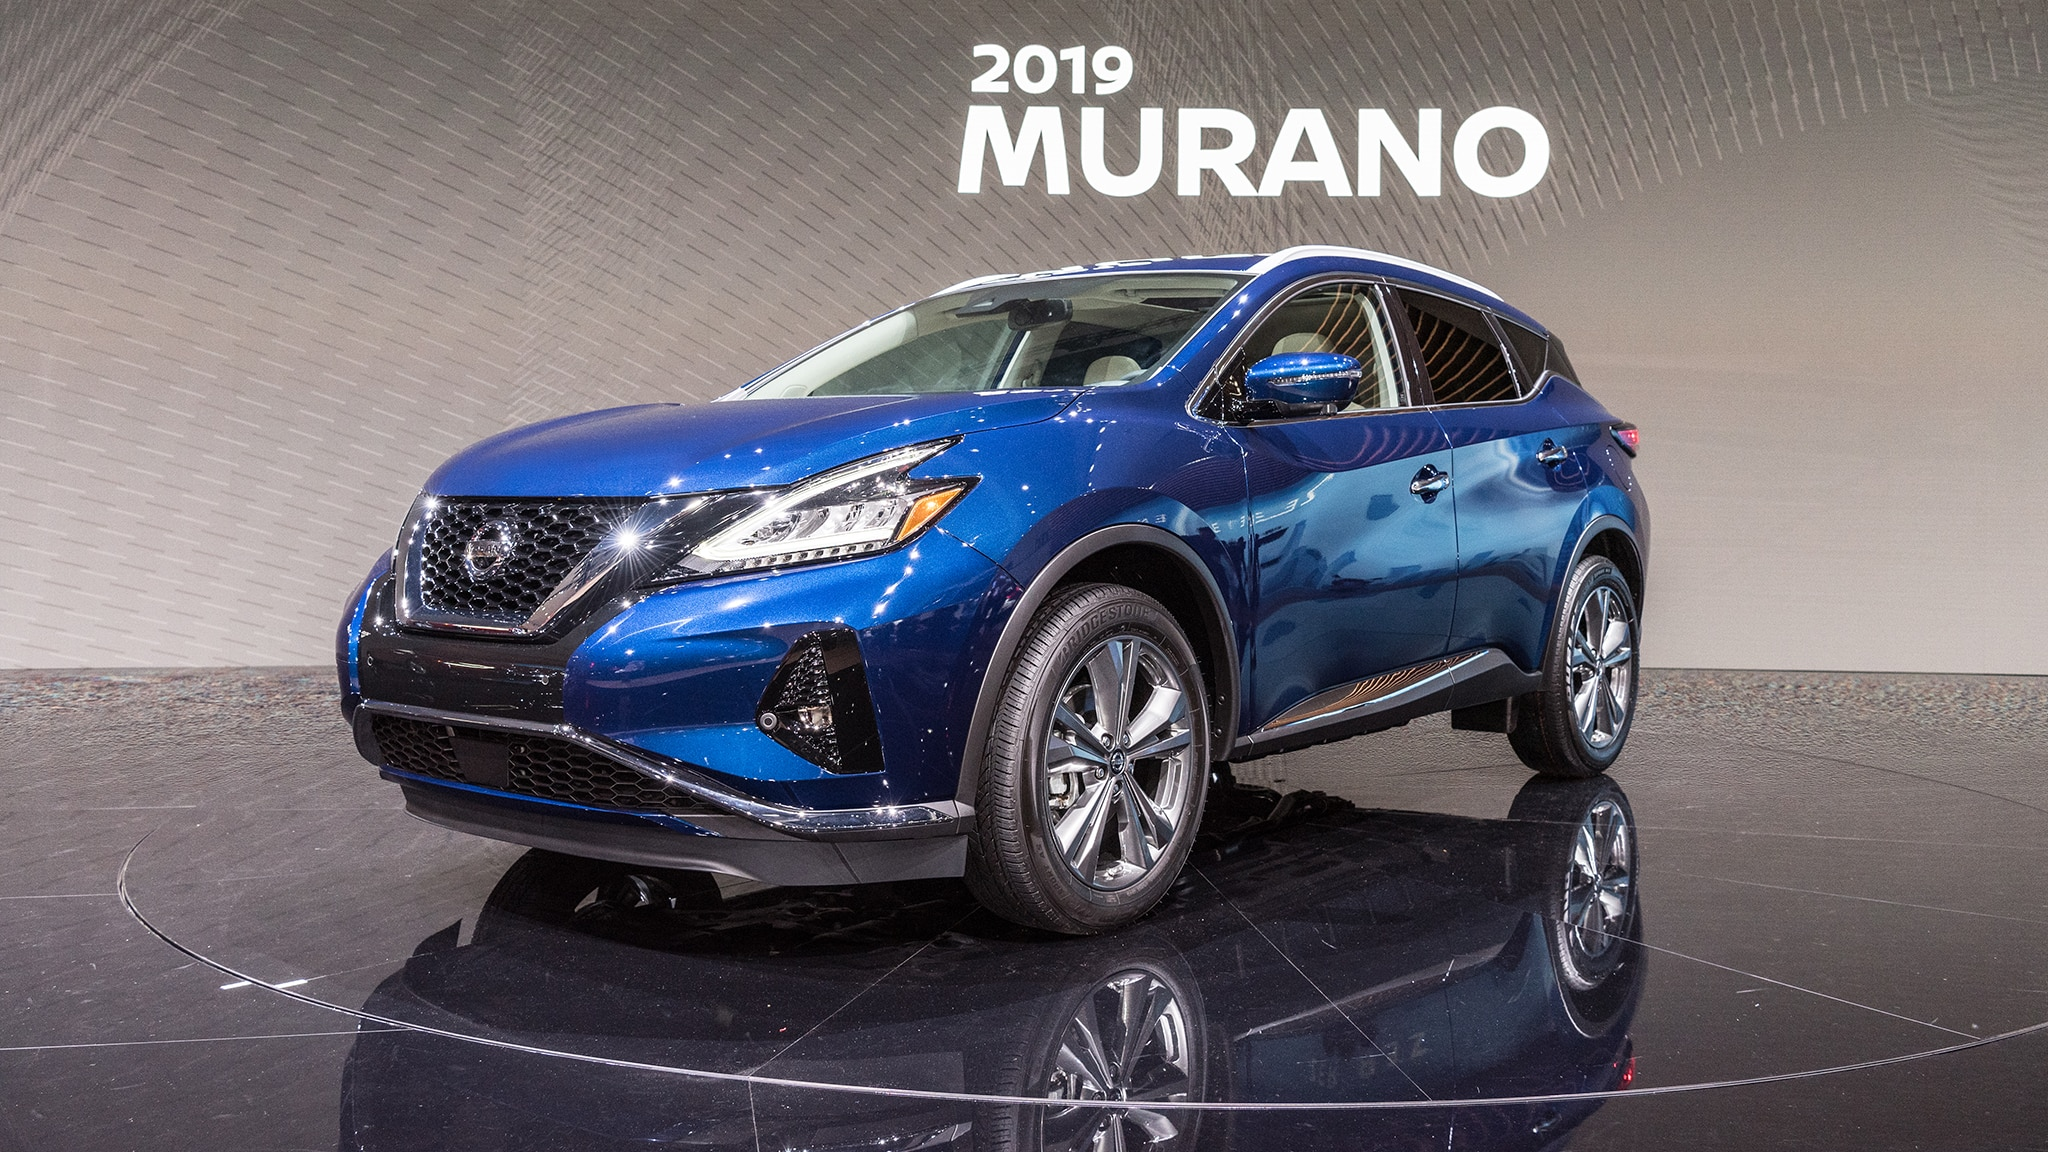 2019 Nissan Murano First Drive Review: Still Comfy and Posh